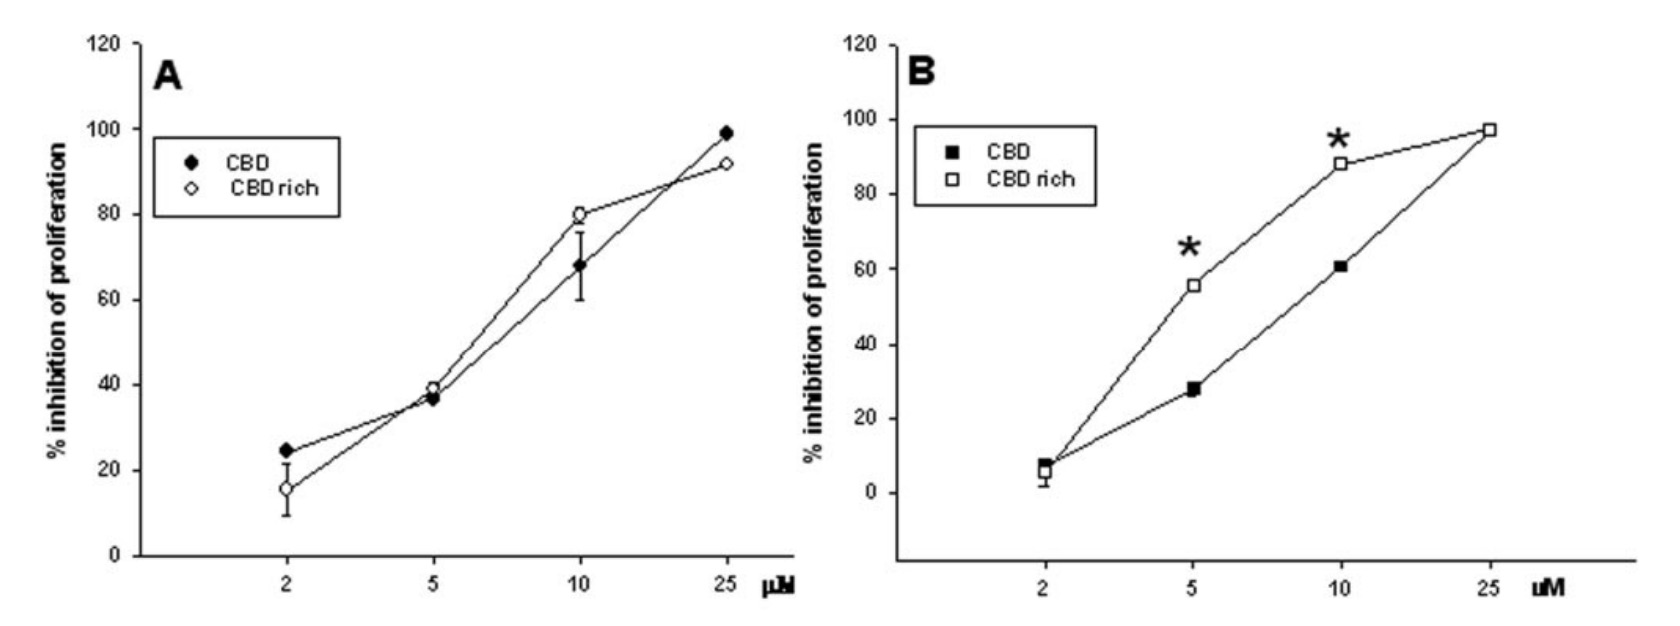 CBD inhibition of cancer.jpg